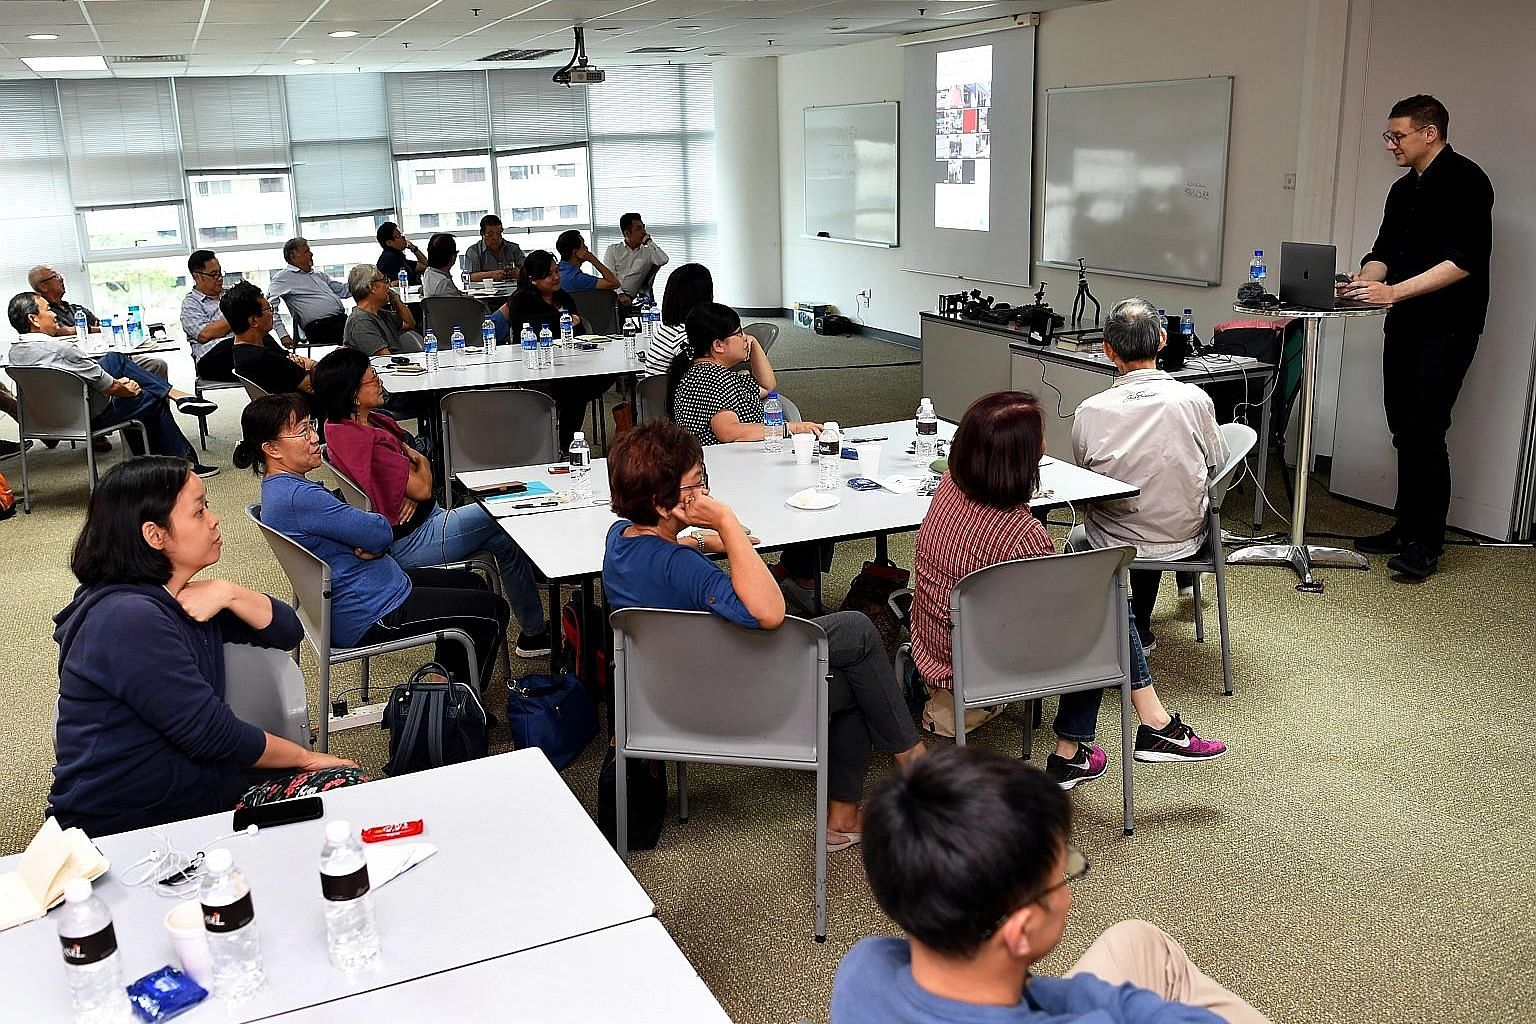 Stirr editor Jonathan Roberts speaking to the 29 participants at The Straits Times' first mobile video masterclass. The participants were taught how to plan, shoot and edit videos with their mobile phones. Two more sessions slated for next month and